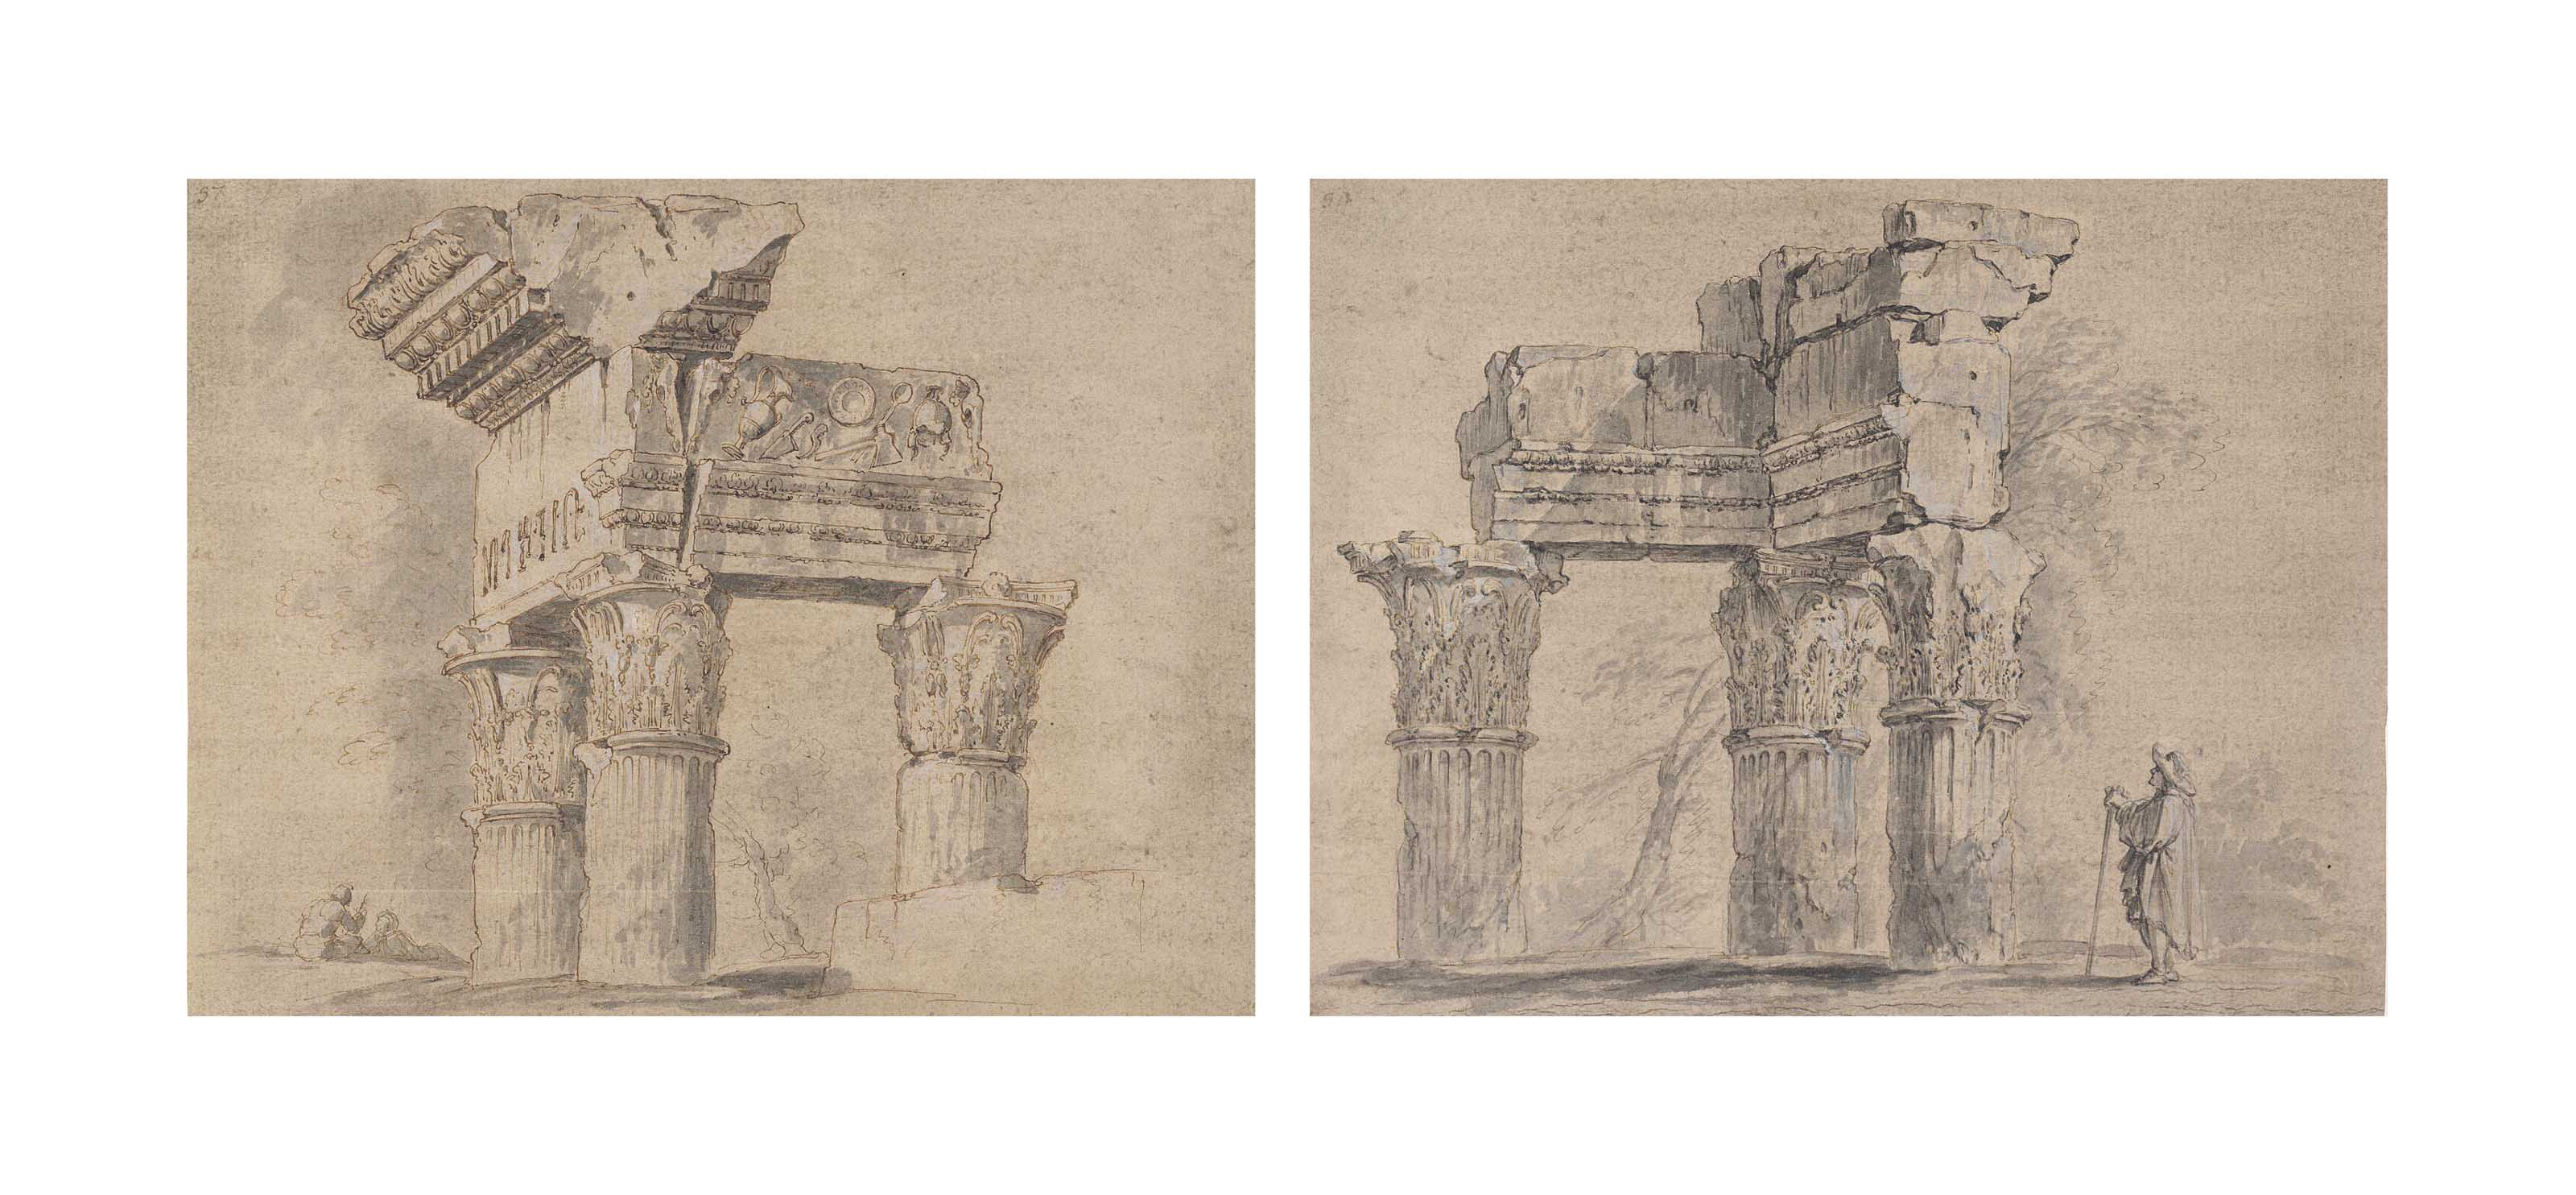 The ruins of the Temple of Vespasian, Rome, with two figures resting; and The ruins of the Temple of Vespasian with an admiring traveller